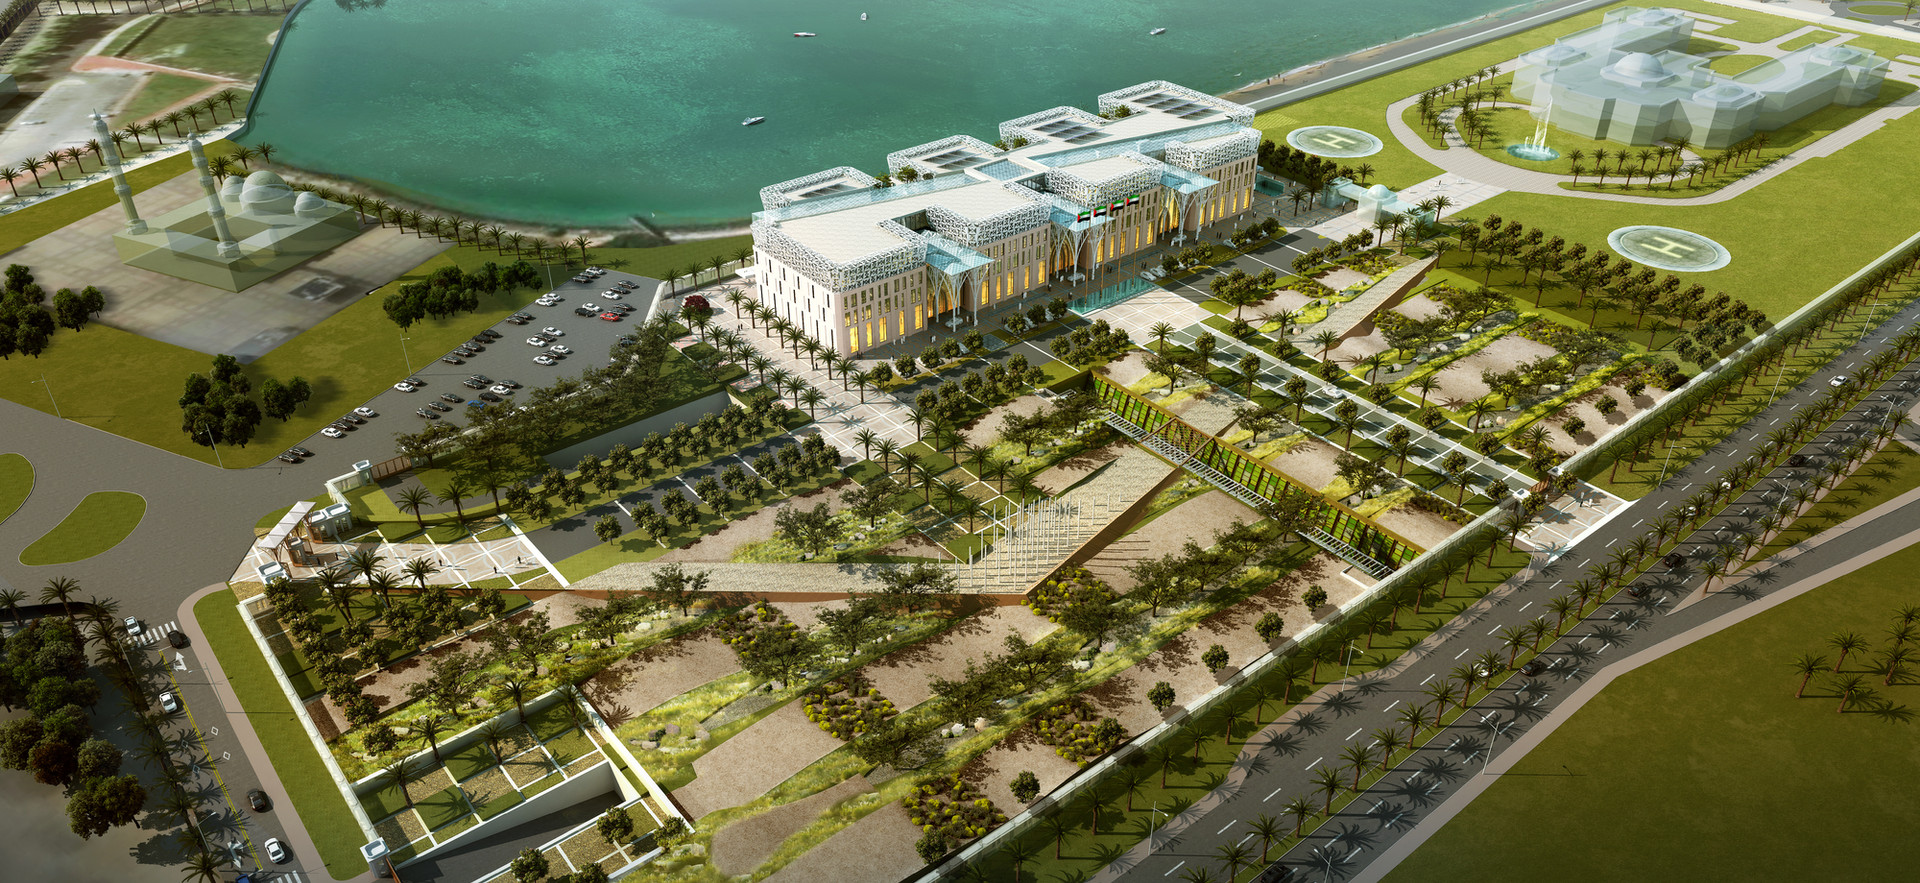 Executive Council Building, Abu Dhabi